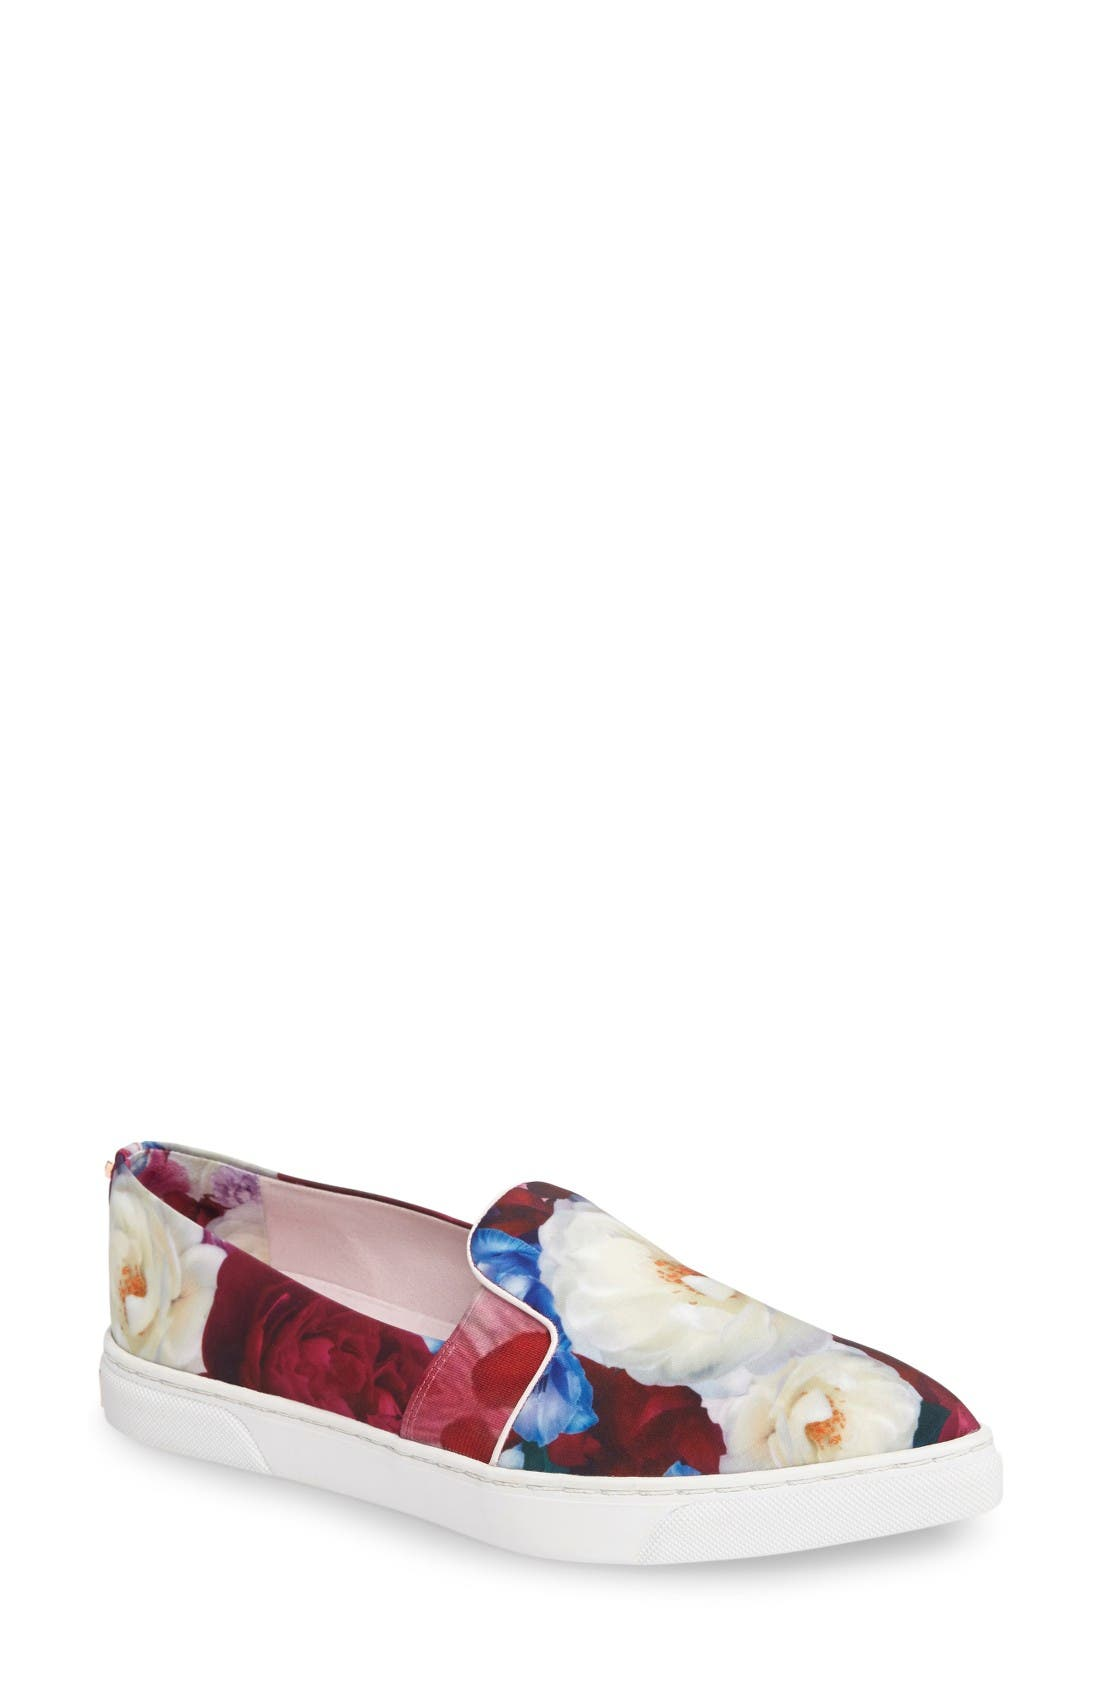 TED BAKER LONDON 'Thfia' Floral Pointy Toe Slip-On